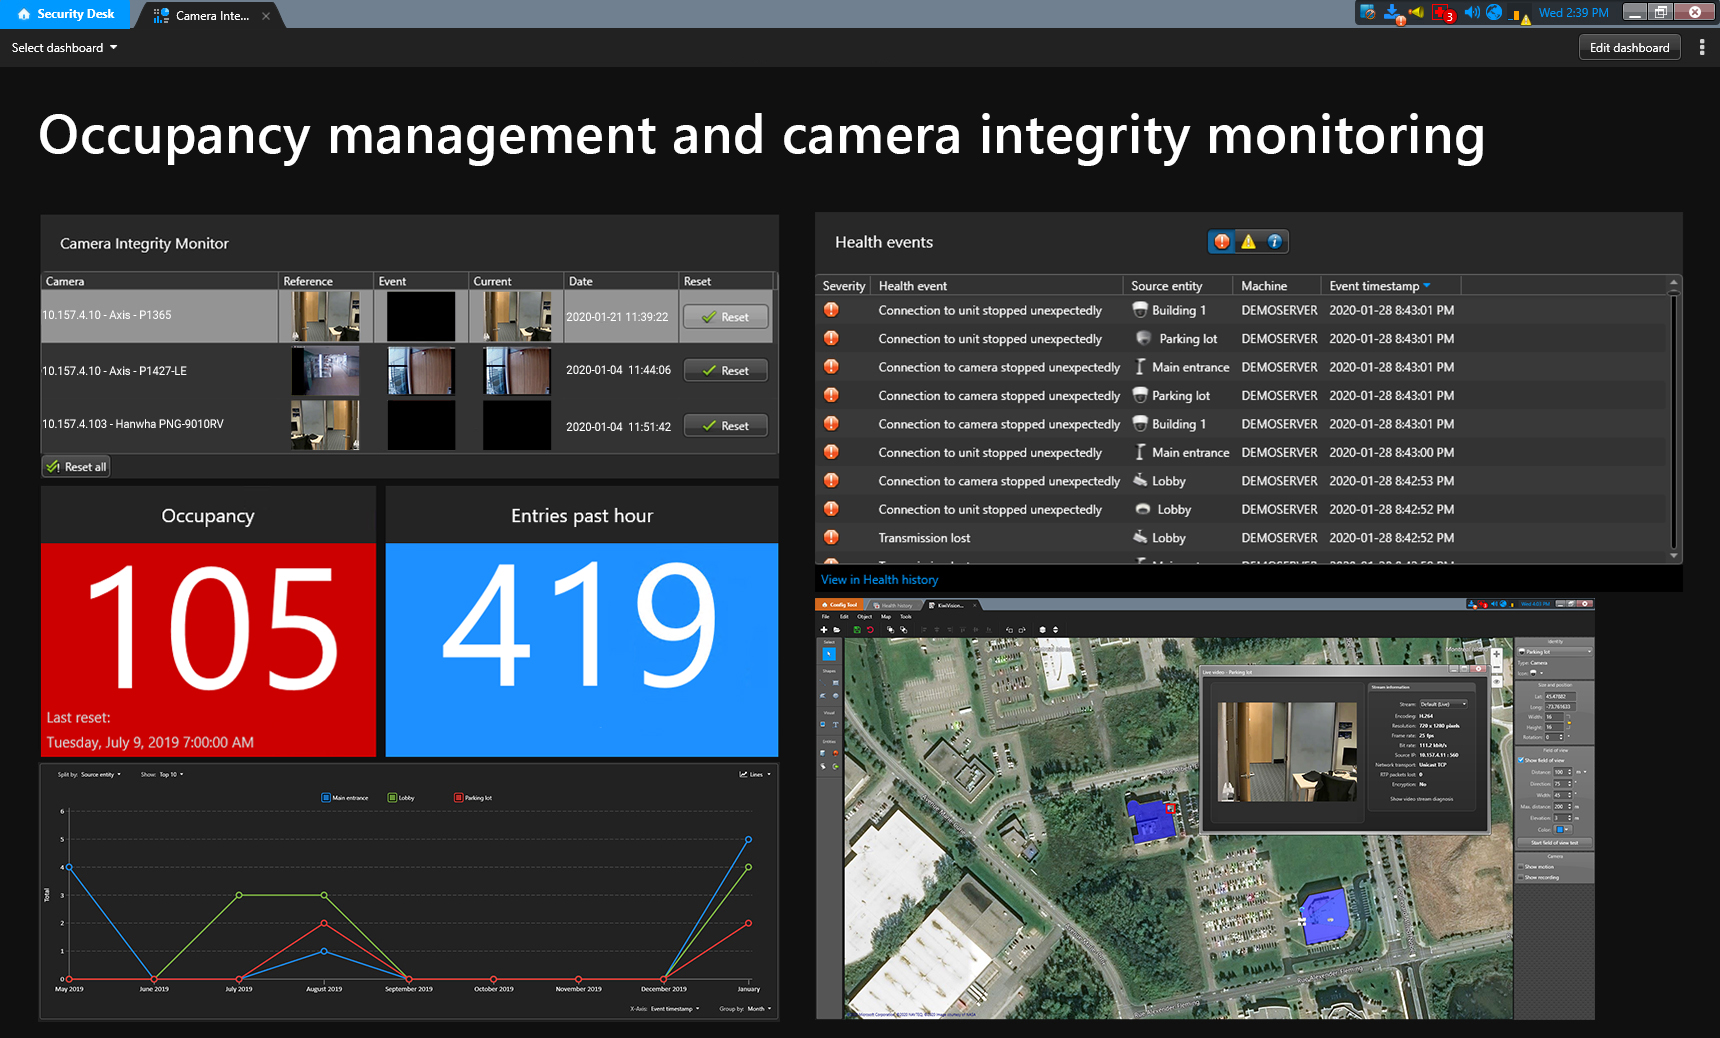 Security desk screen shot: Occupation management and camera integrity monitoring